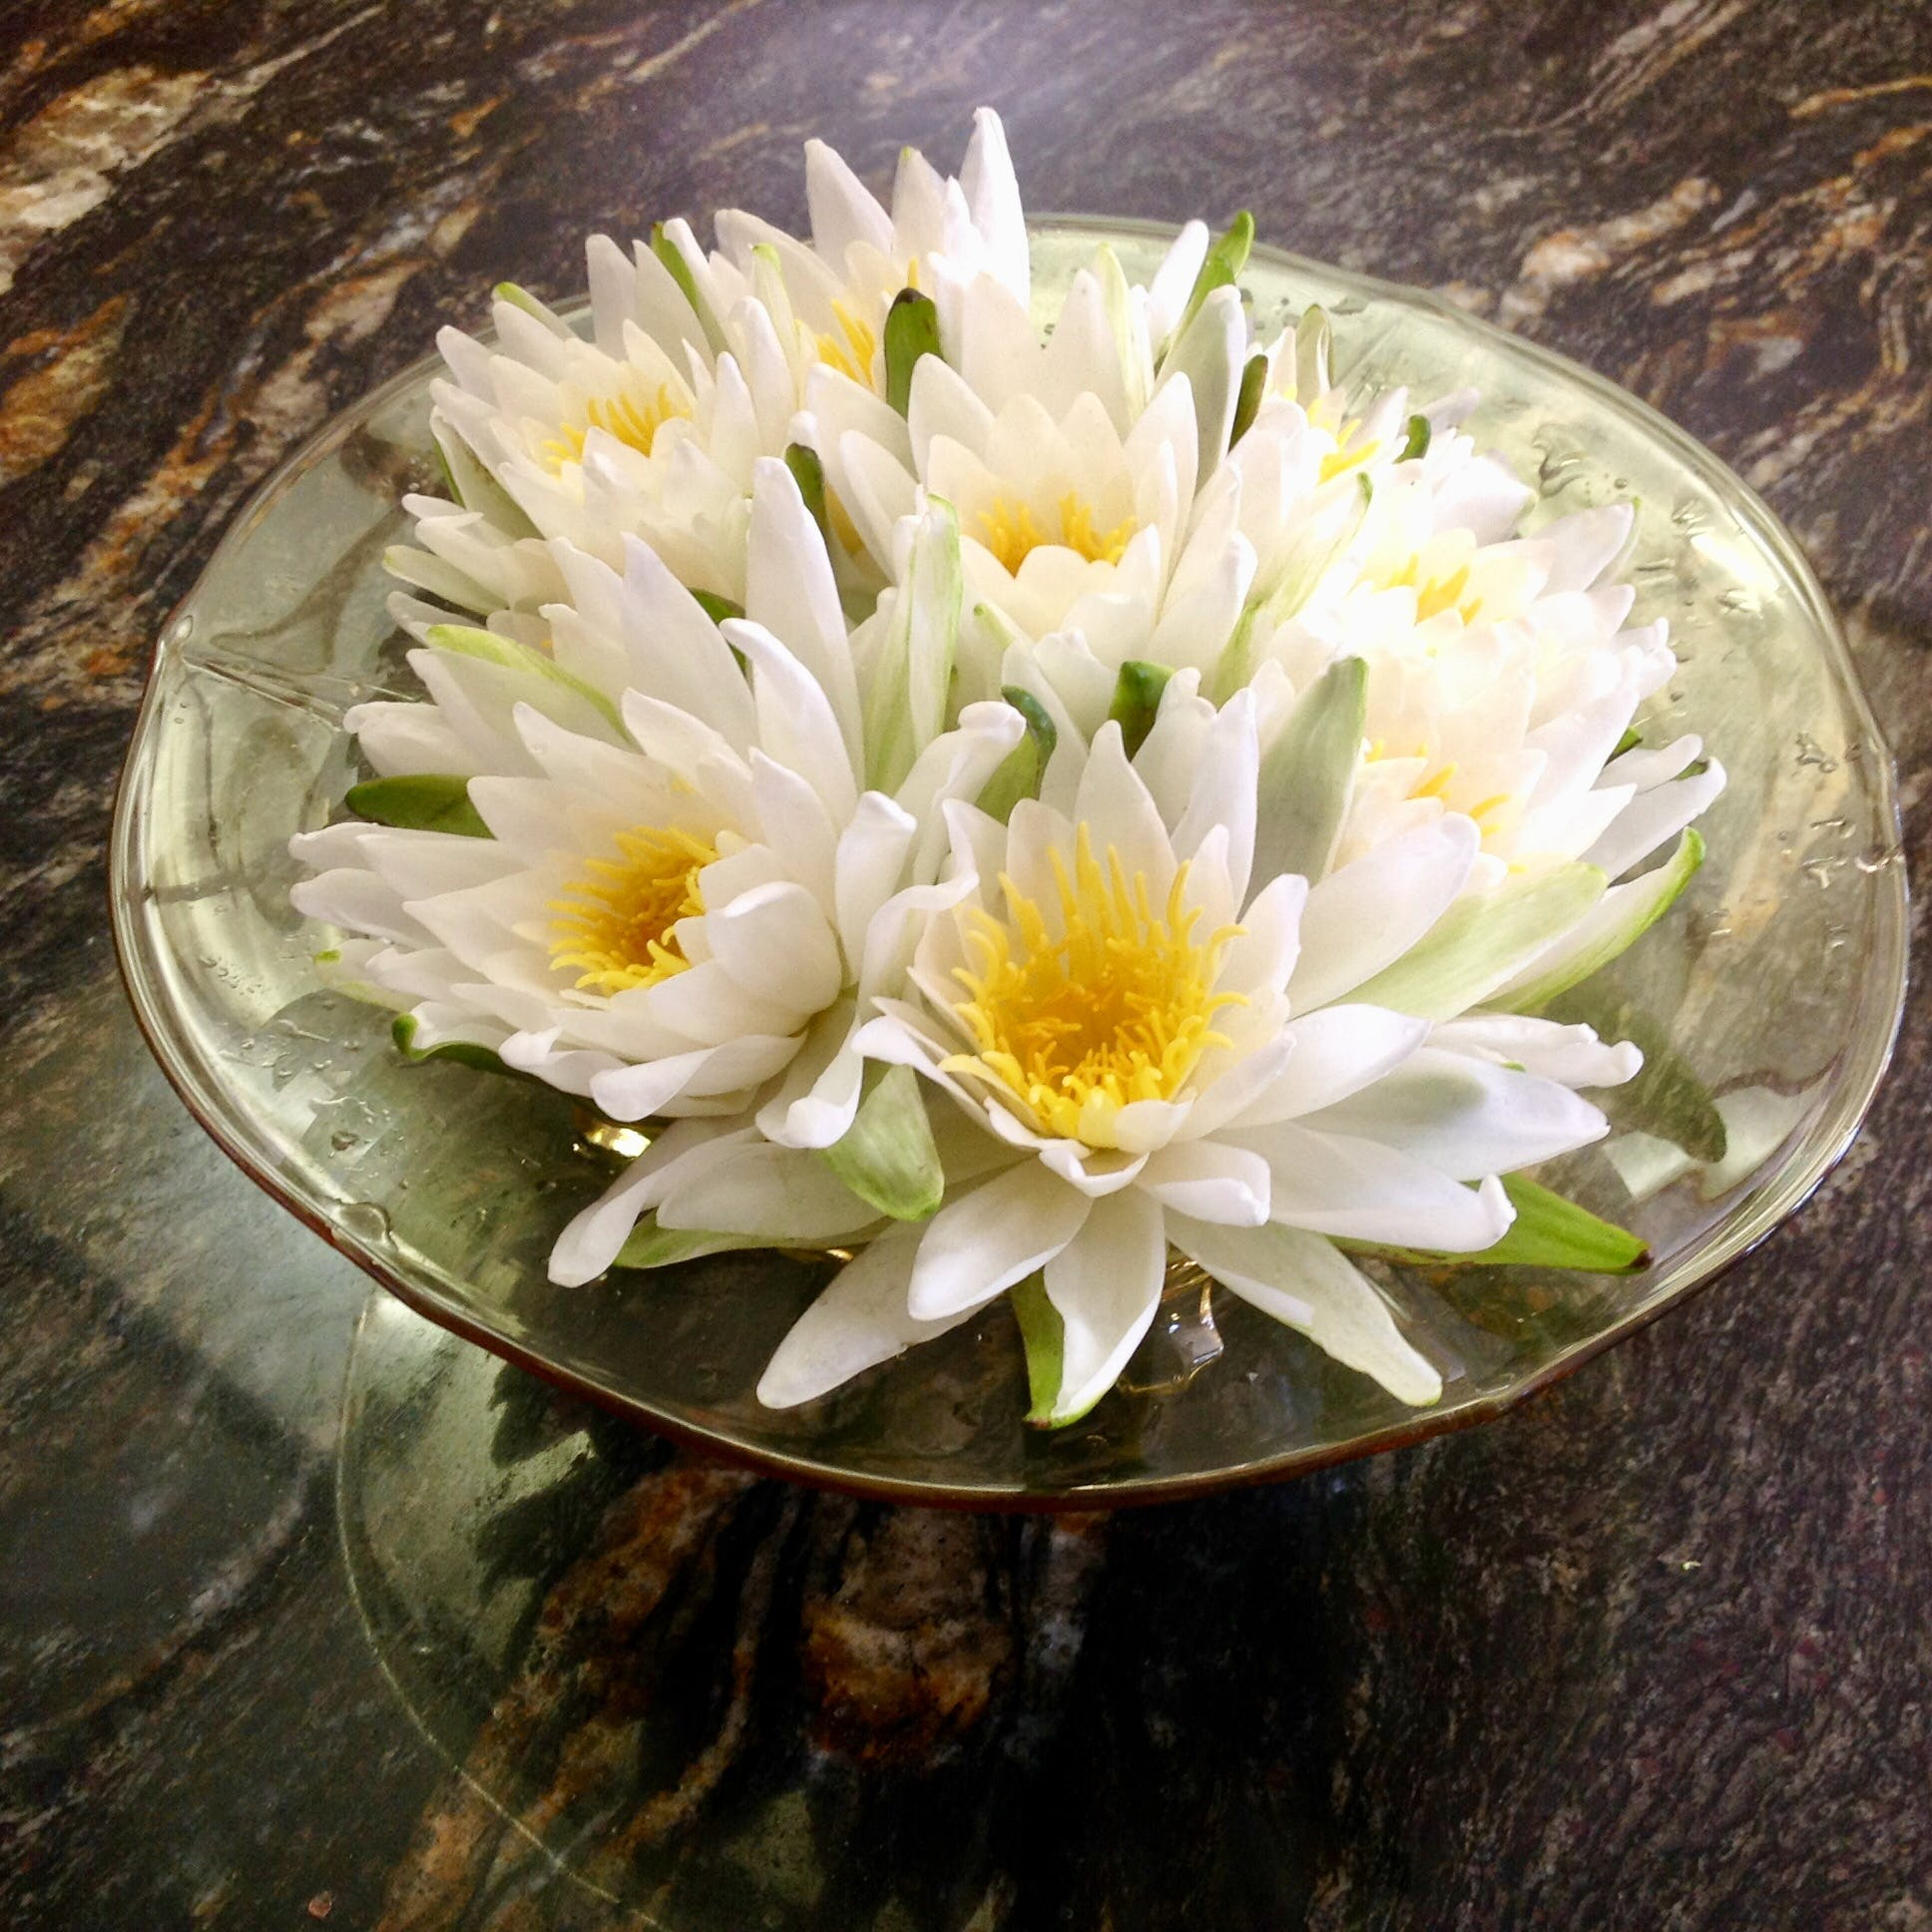 Free stock photo of Water Lillie's in bloom. Bowl of flowers